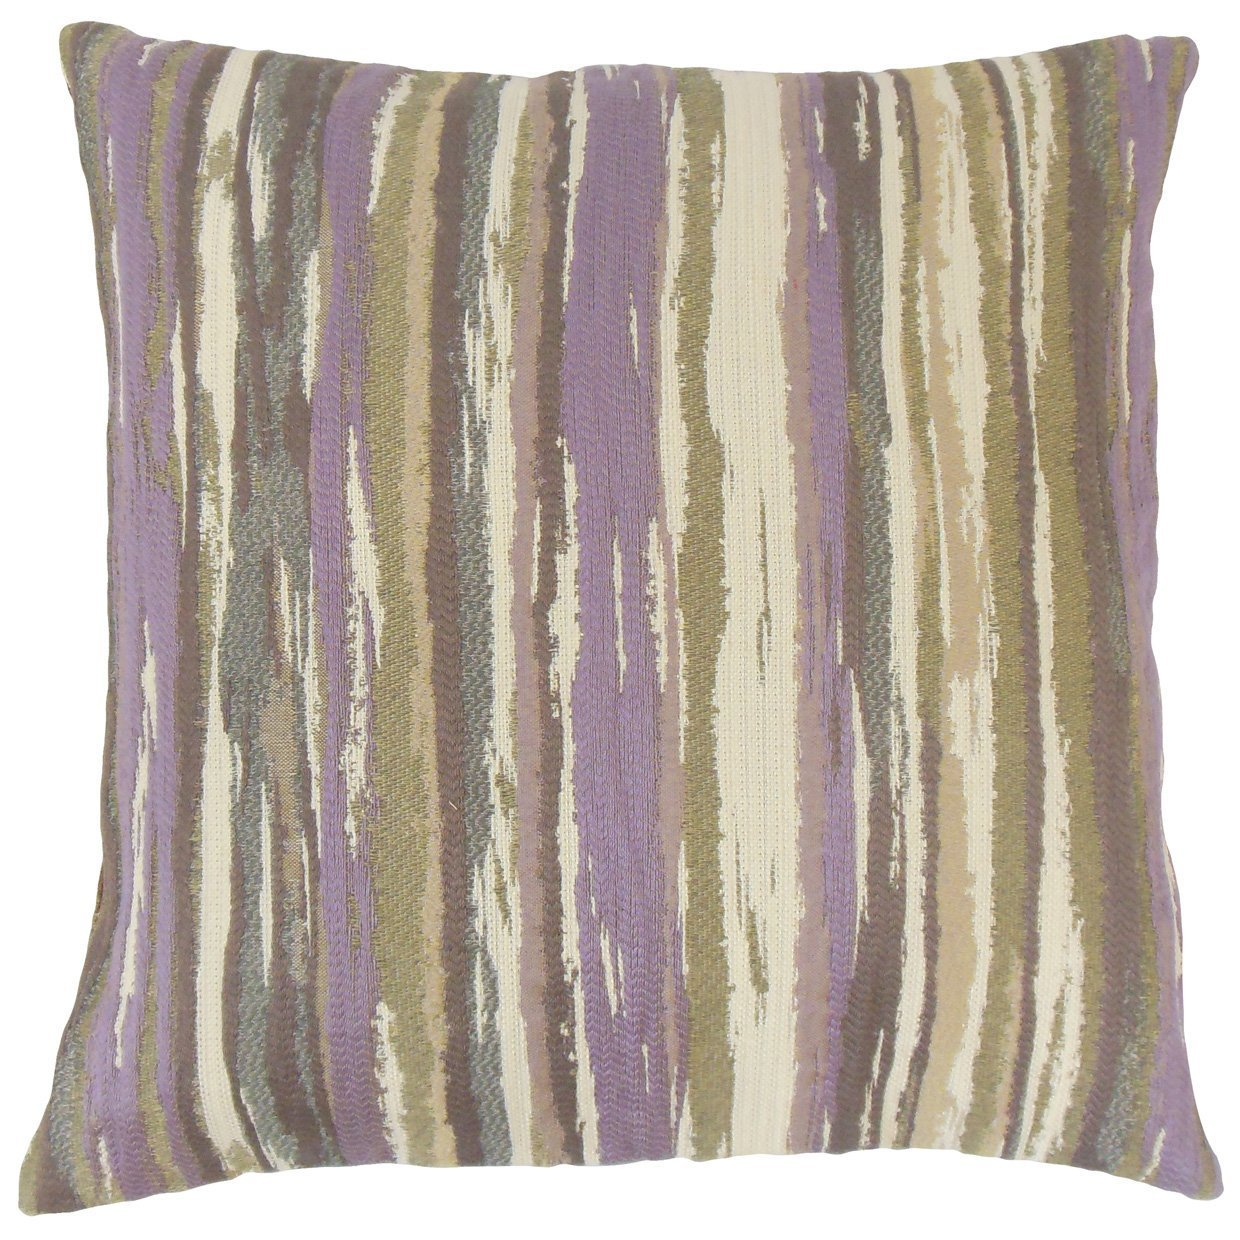 The Pillow Collection Uchenna Stripes Throw Pillow Cover